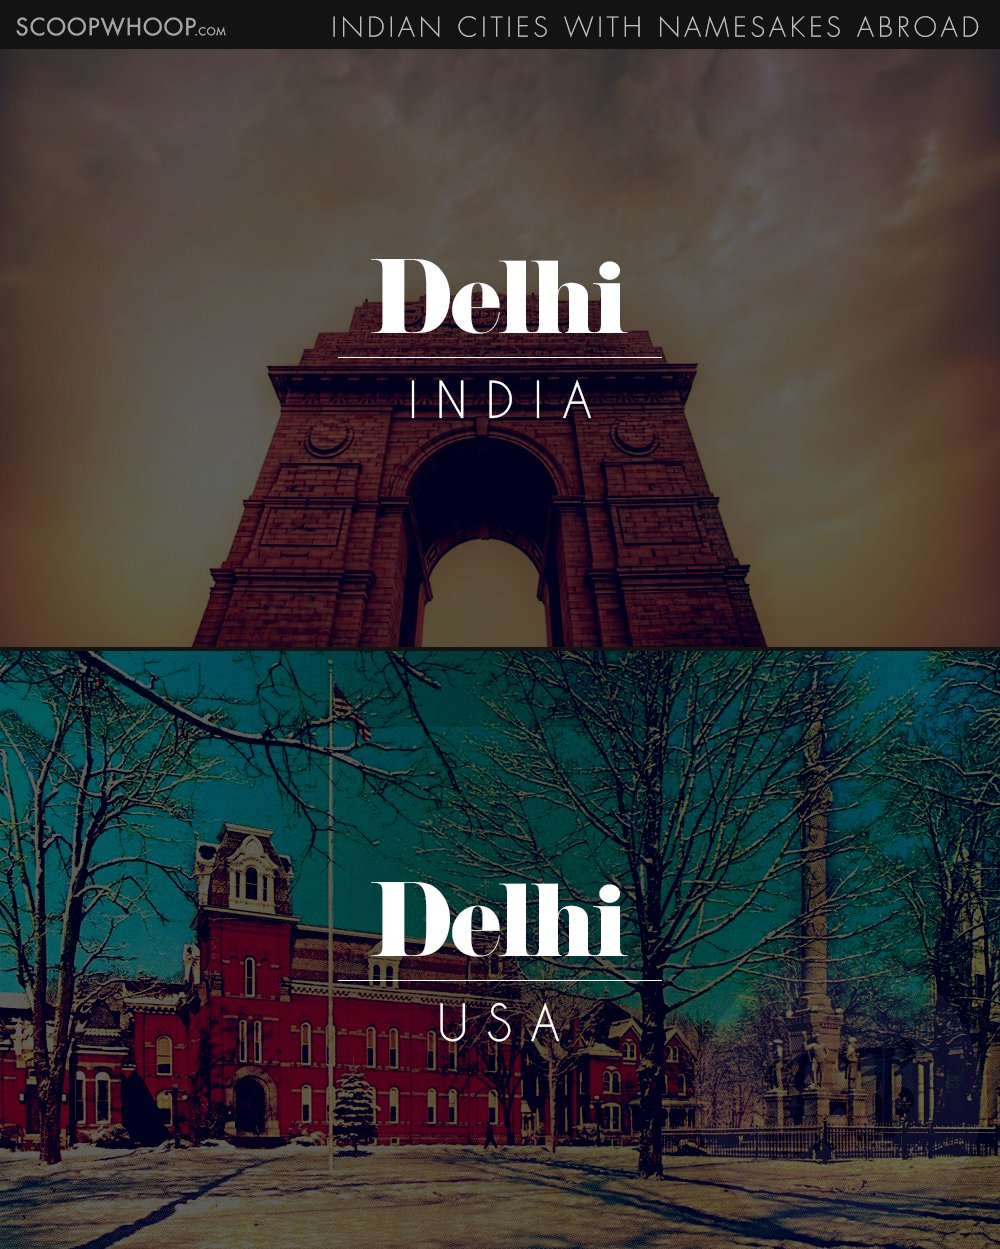 Canada And Is Spelled As Del High But The Capital City Of India Town In United States Share Same Name Pronunciation